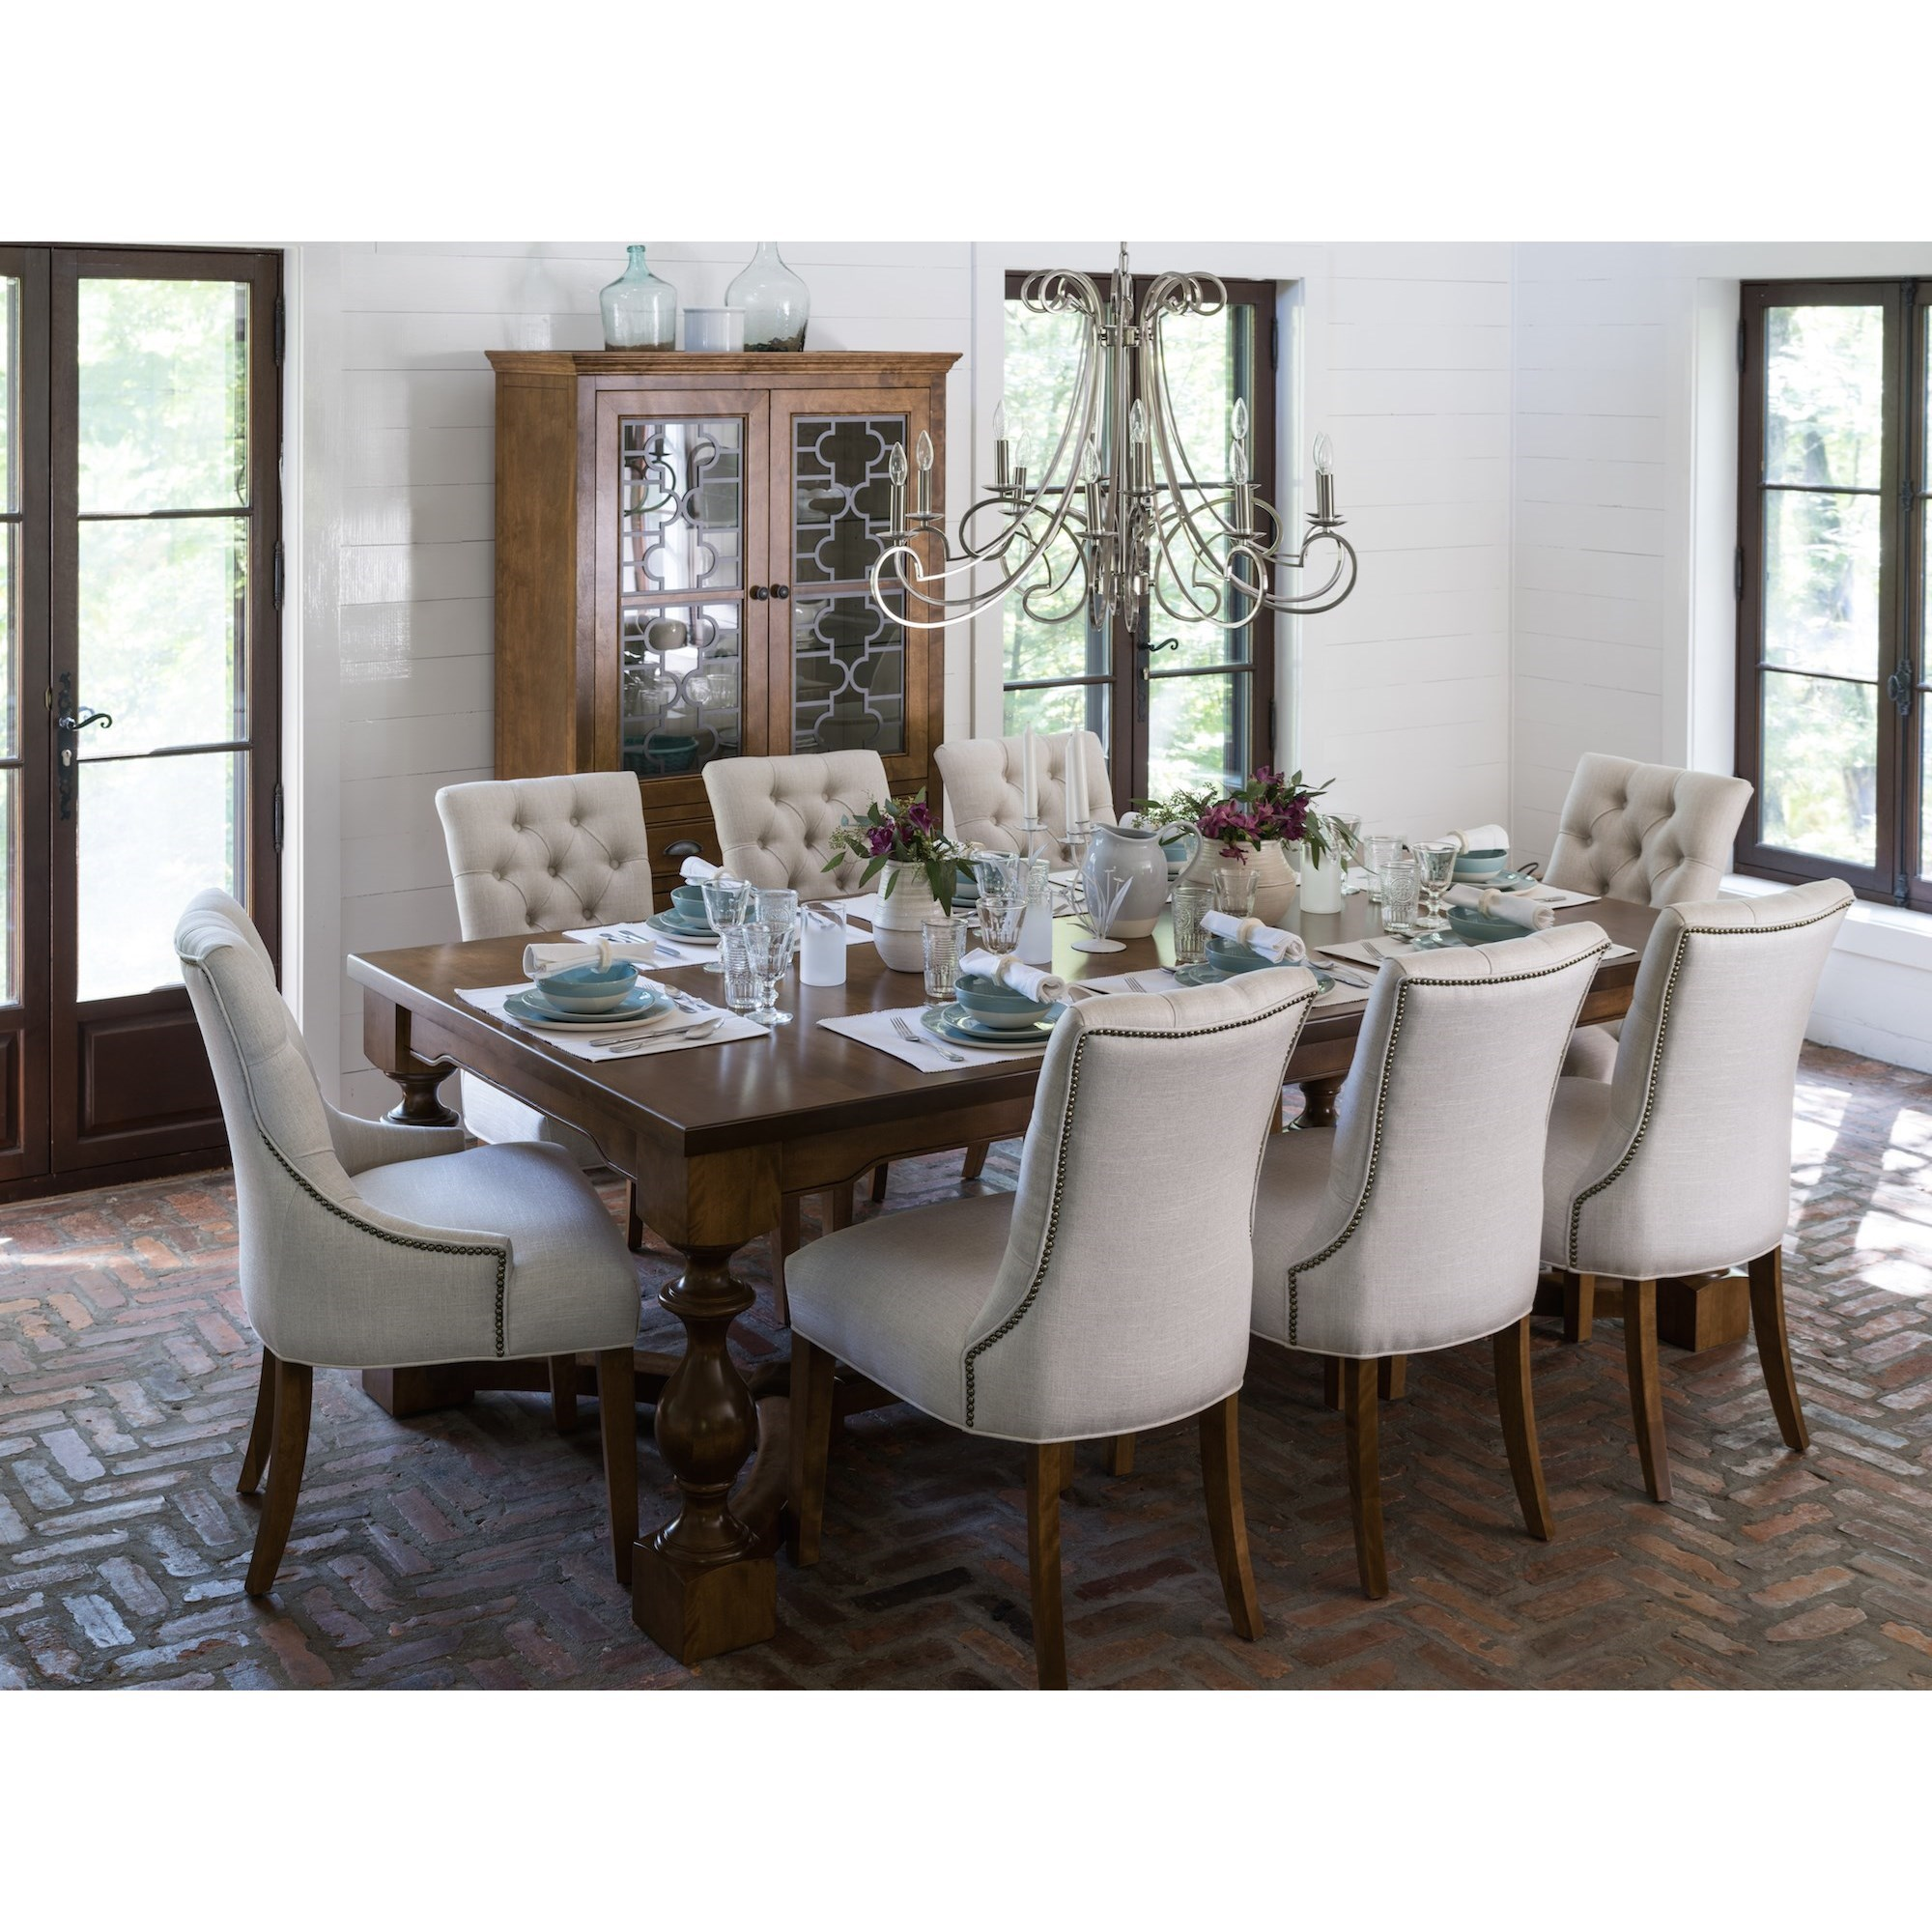 Canadel Farmhouse ChicDining Room Group ...